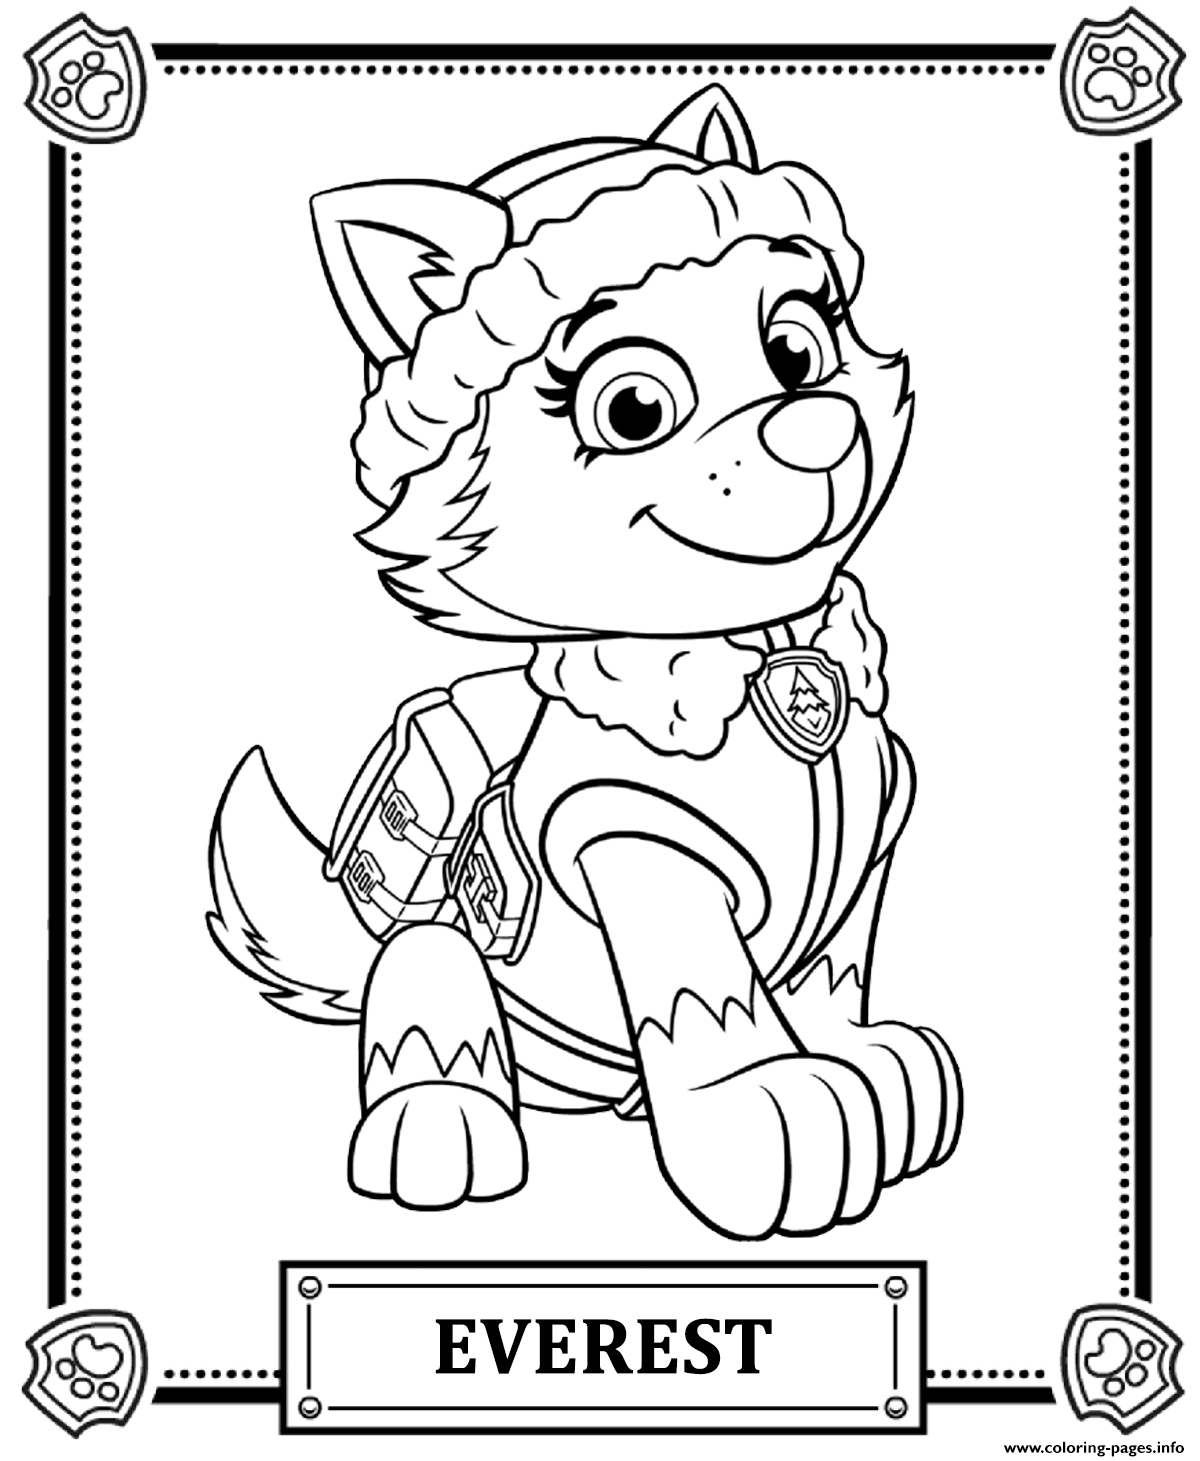 1200x1461 Print Paw Patrol Everest Coloring Pages Birthday With Skye